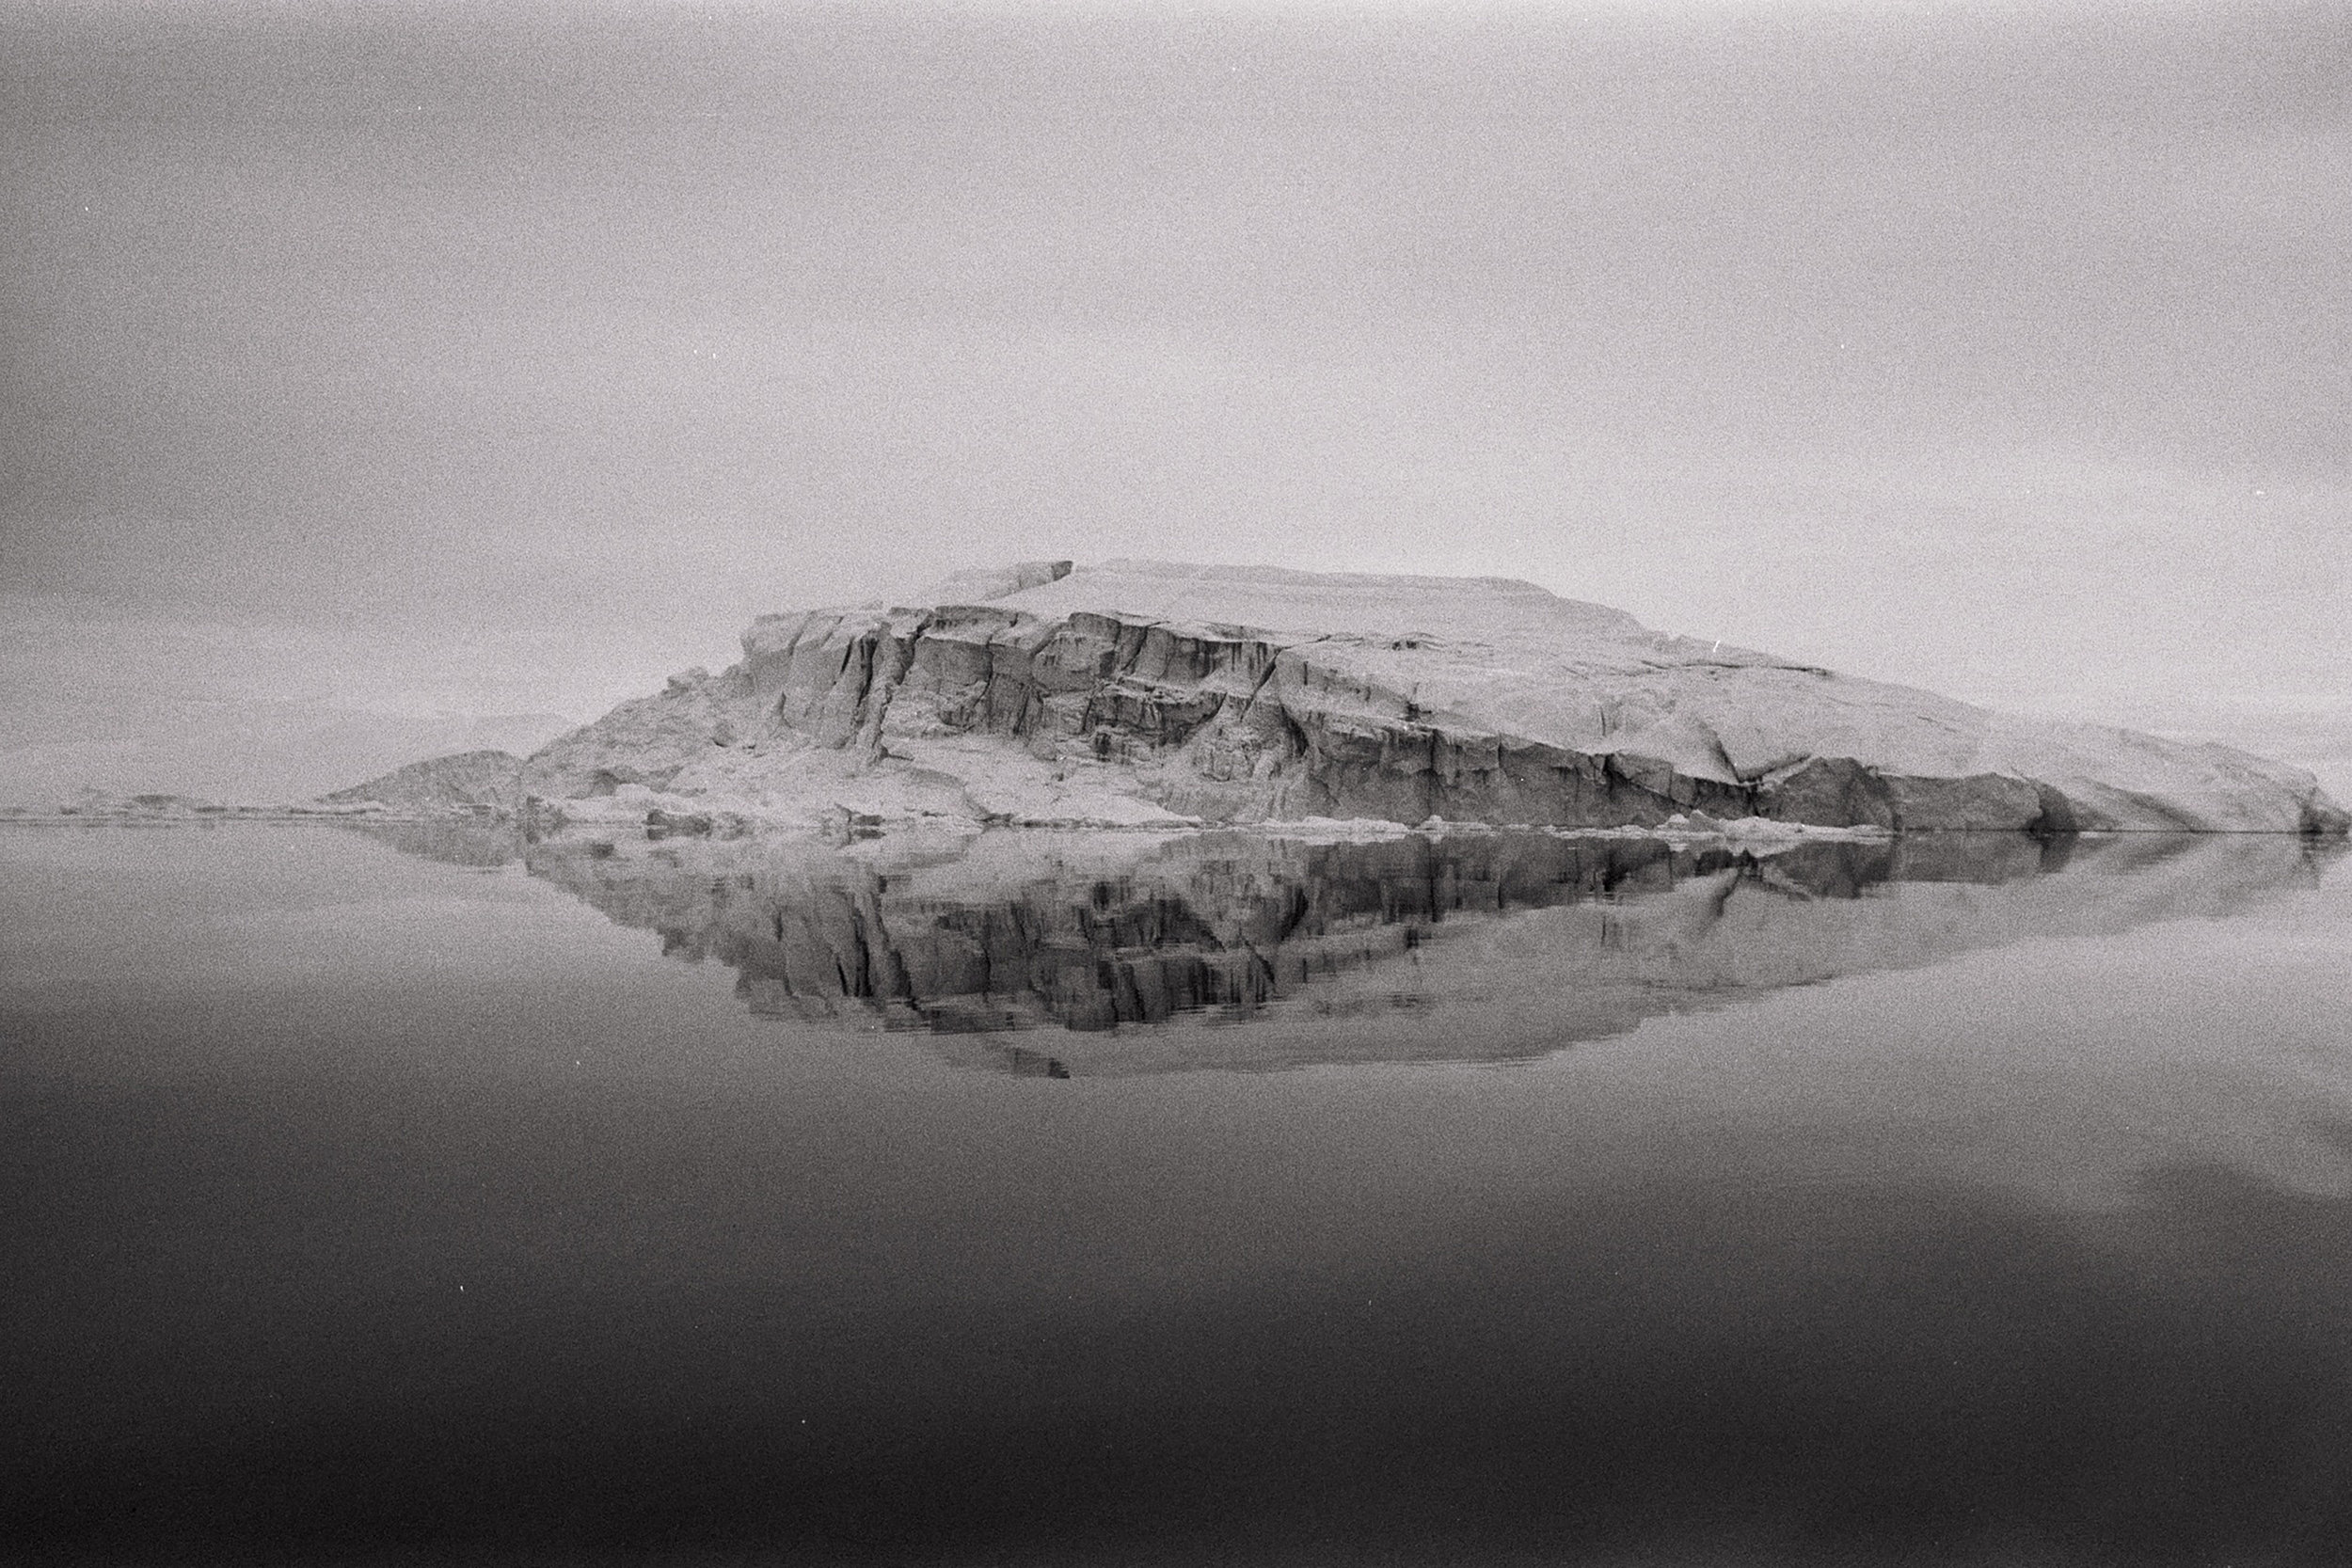 Location : Ilulissat, 69°13′N 51°06′W, Greenland - Time : 2pm - Body : Canon Eos 1n - Lens : Canon 20mm f2.8 - Film : Ilford 400